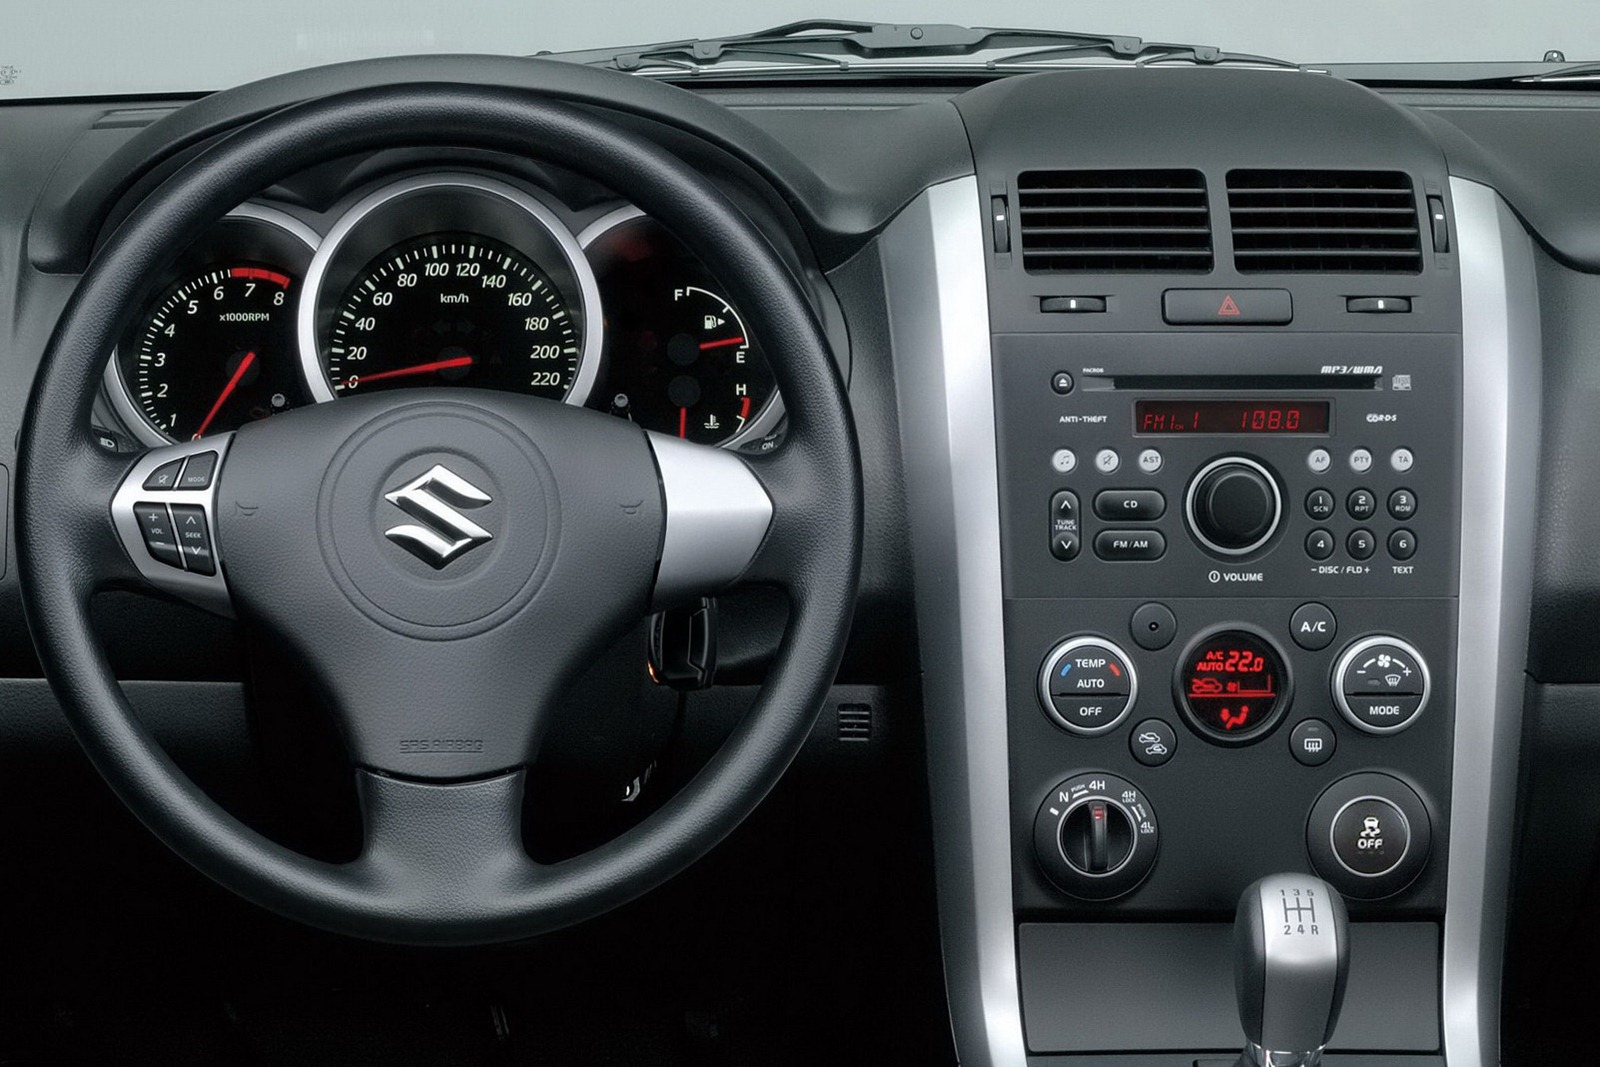 2013 Suzuki Grand Vitara Interior Review